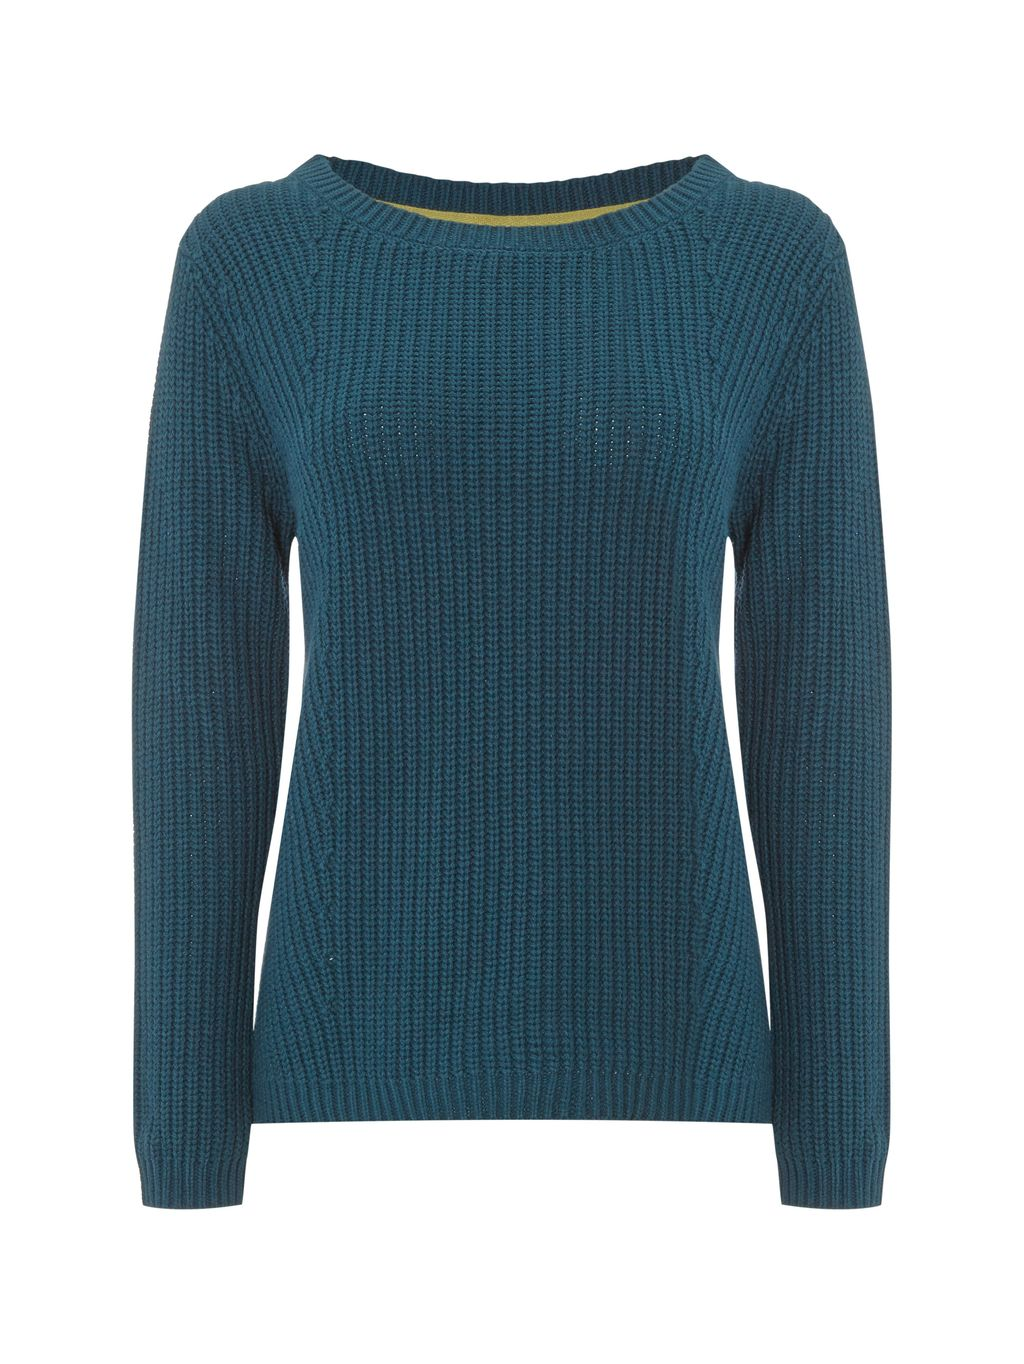 Fiori Jumper, Blue - neckline: slash/boat neckline; pattern: plain; style: standard; predominant colour: teal; occasions: casual, creative work; length: standard; fibres: cotton - 100%; fit: standard fit; sleeve length: long sleeve; sleeve style: standard; texture group: knits/crochet; pattern type: knitted - other; season: s/s 2016; wardrobe: highlight